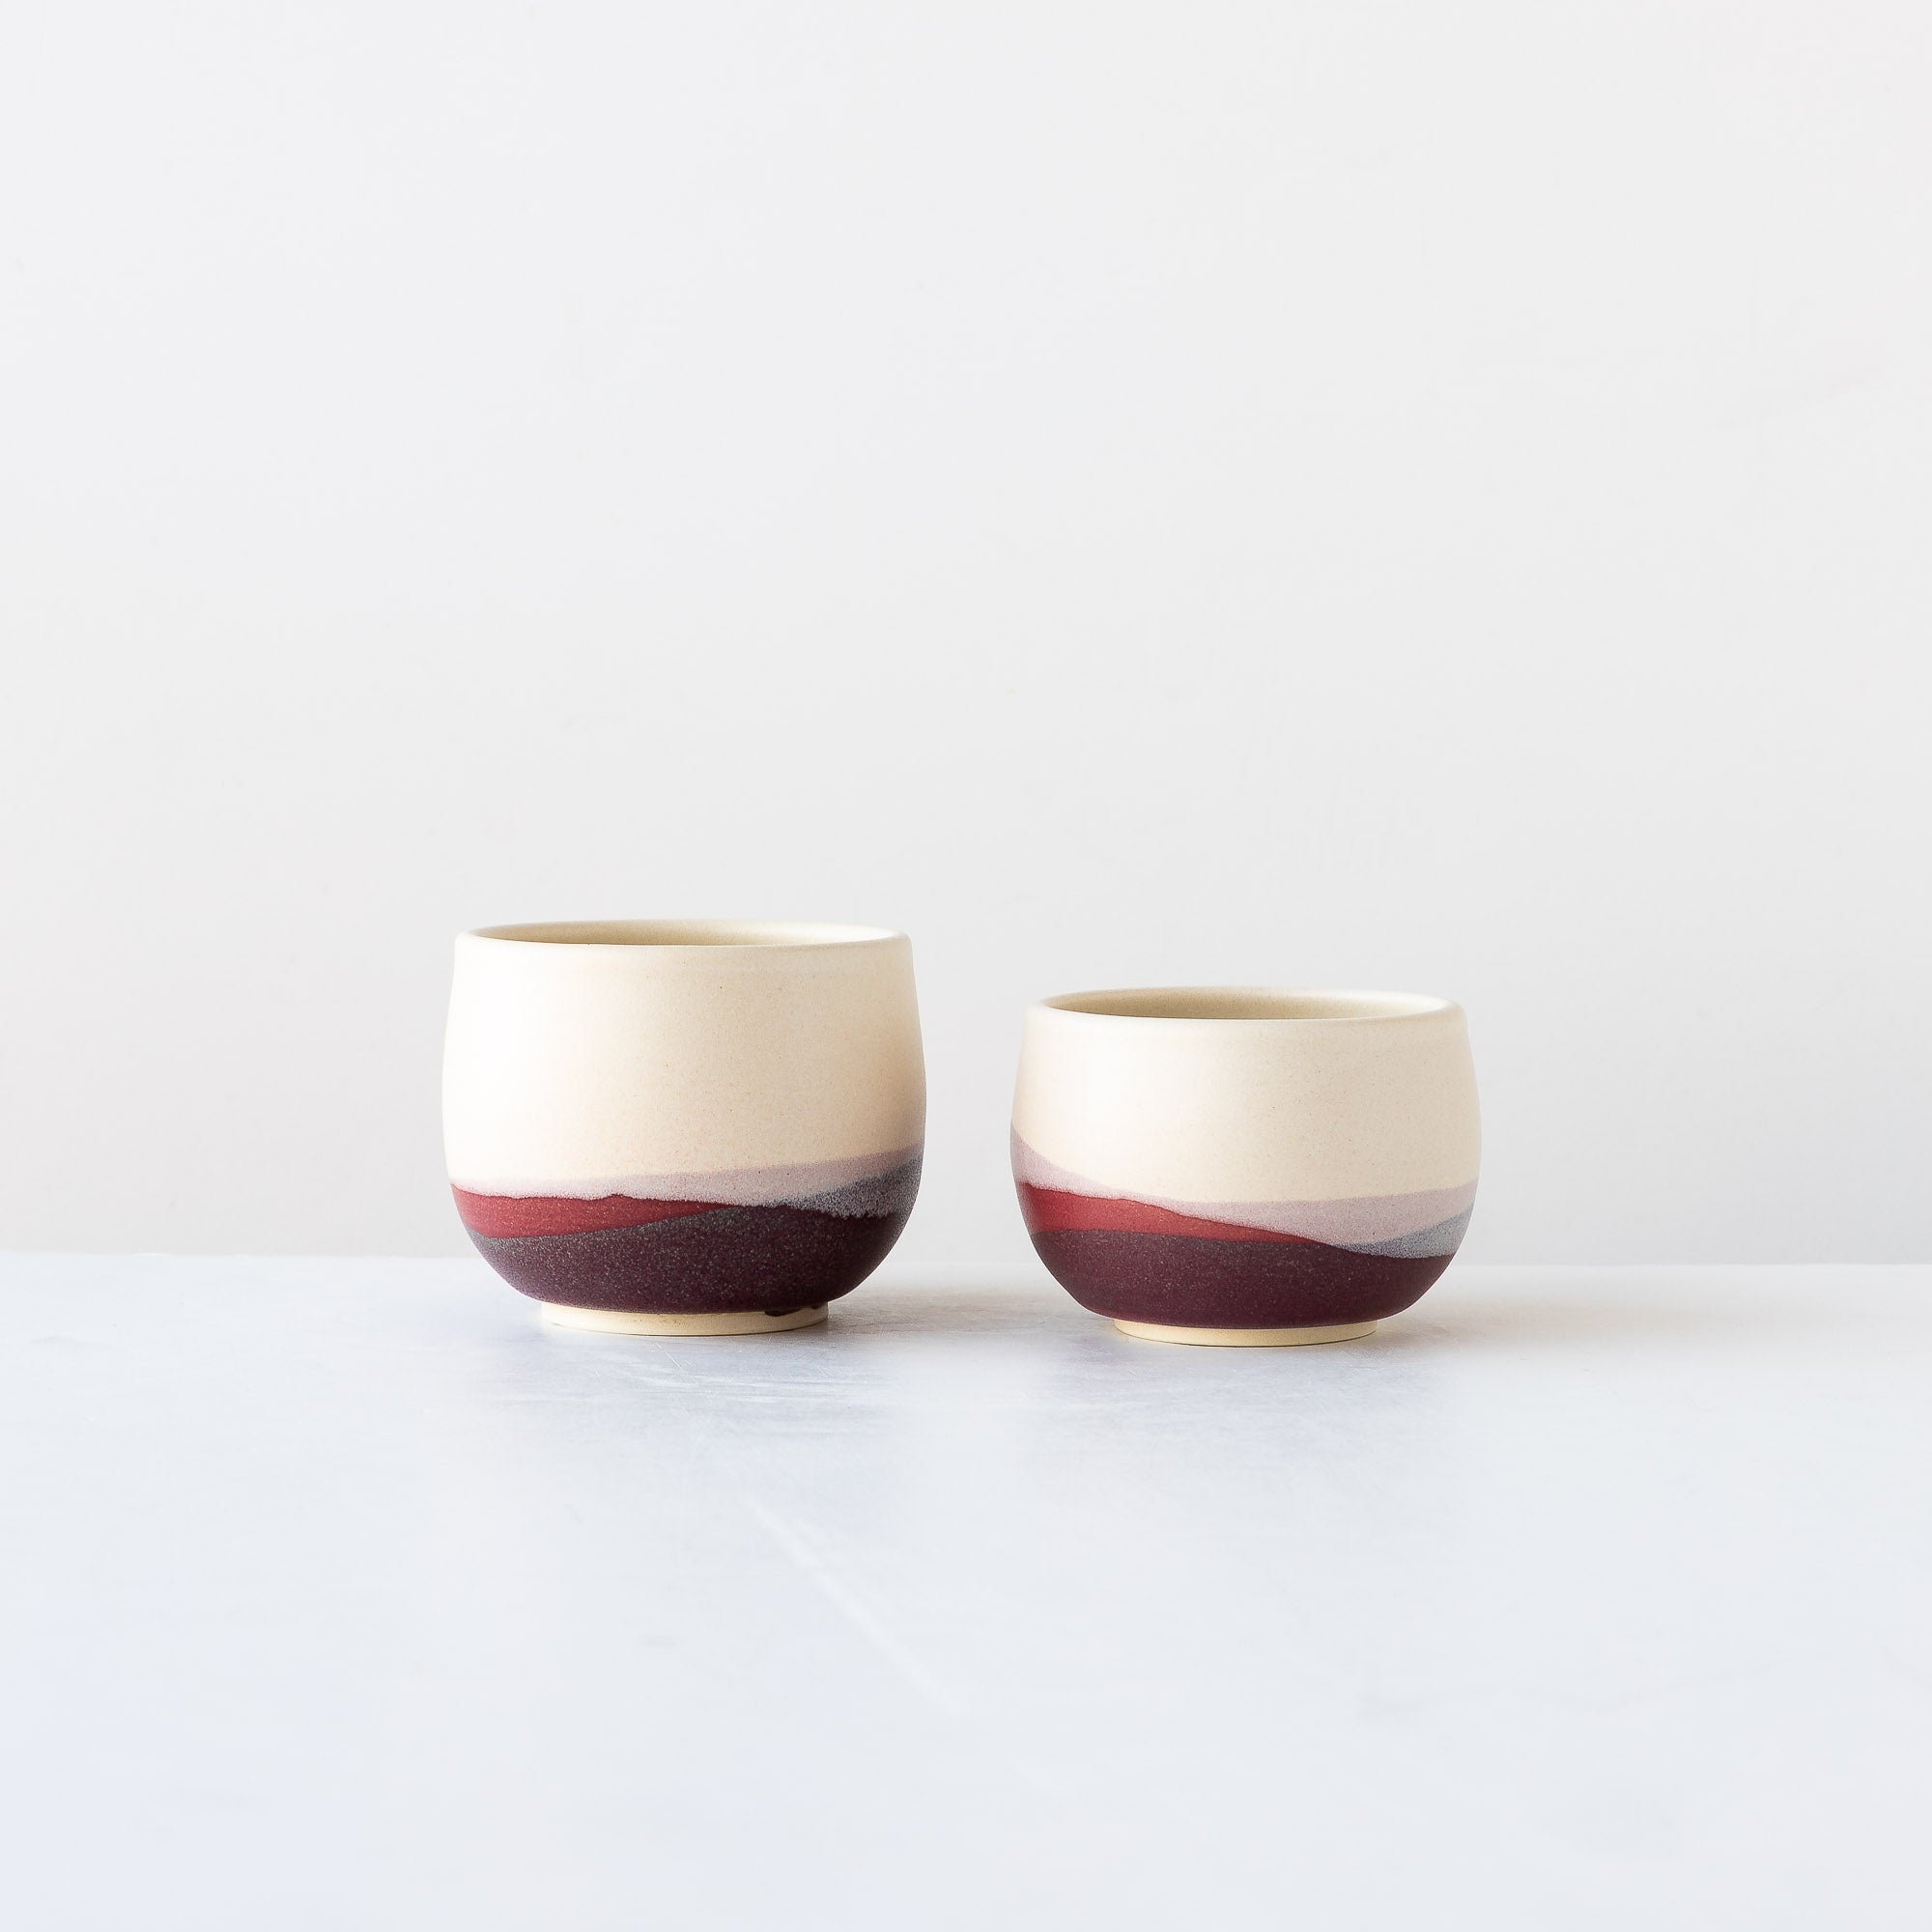 Two Pays d'O - Handmade Stoneware Tumblers / Small Bowls - Sold by Chic & Basta